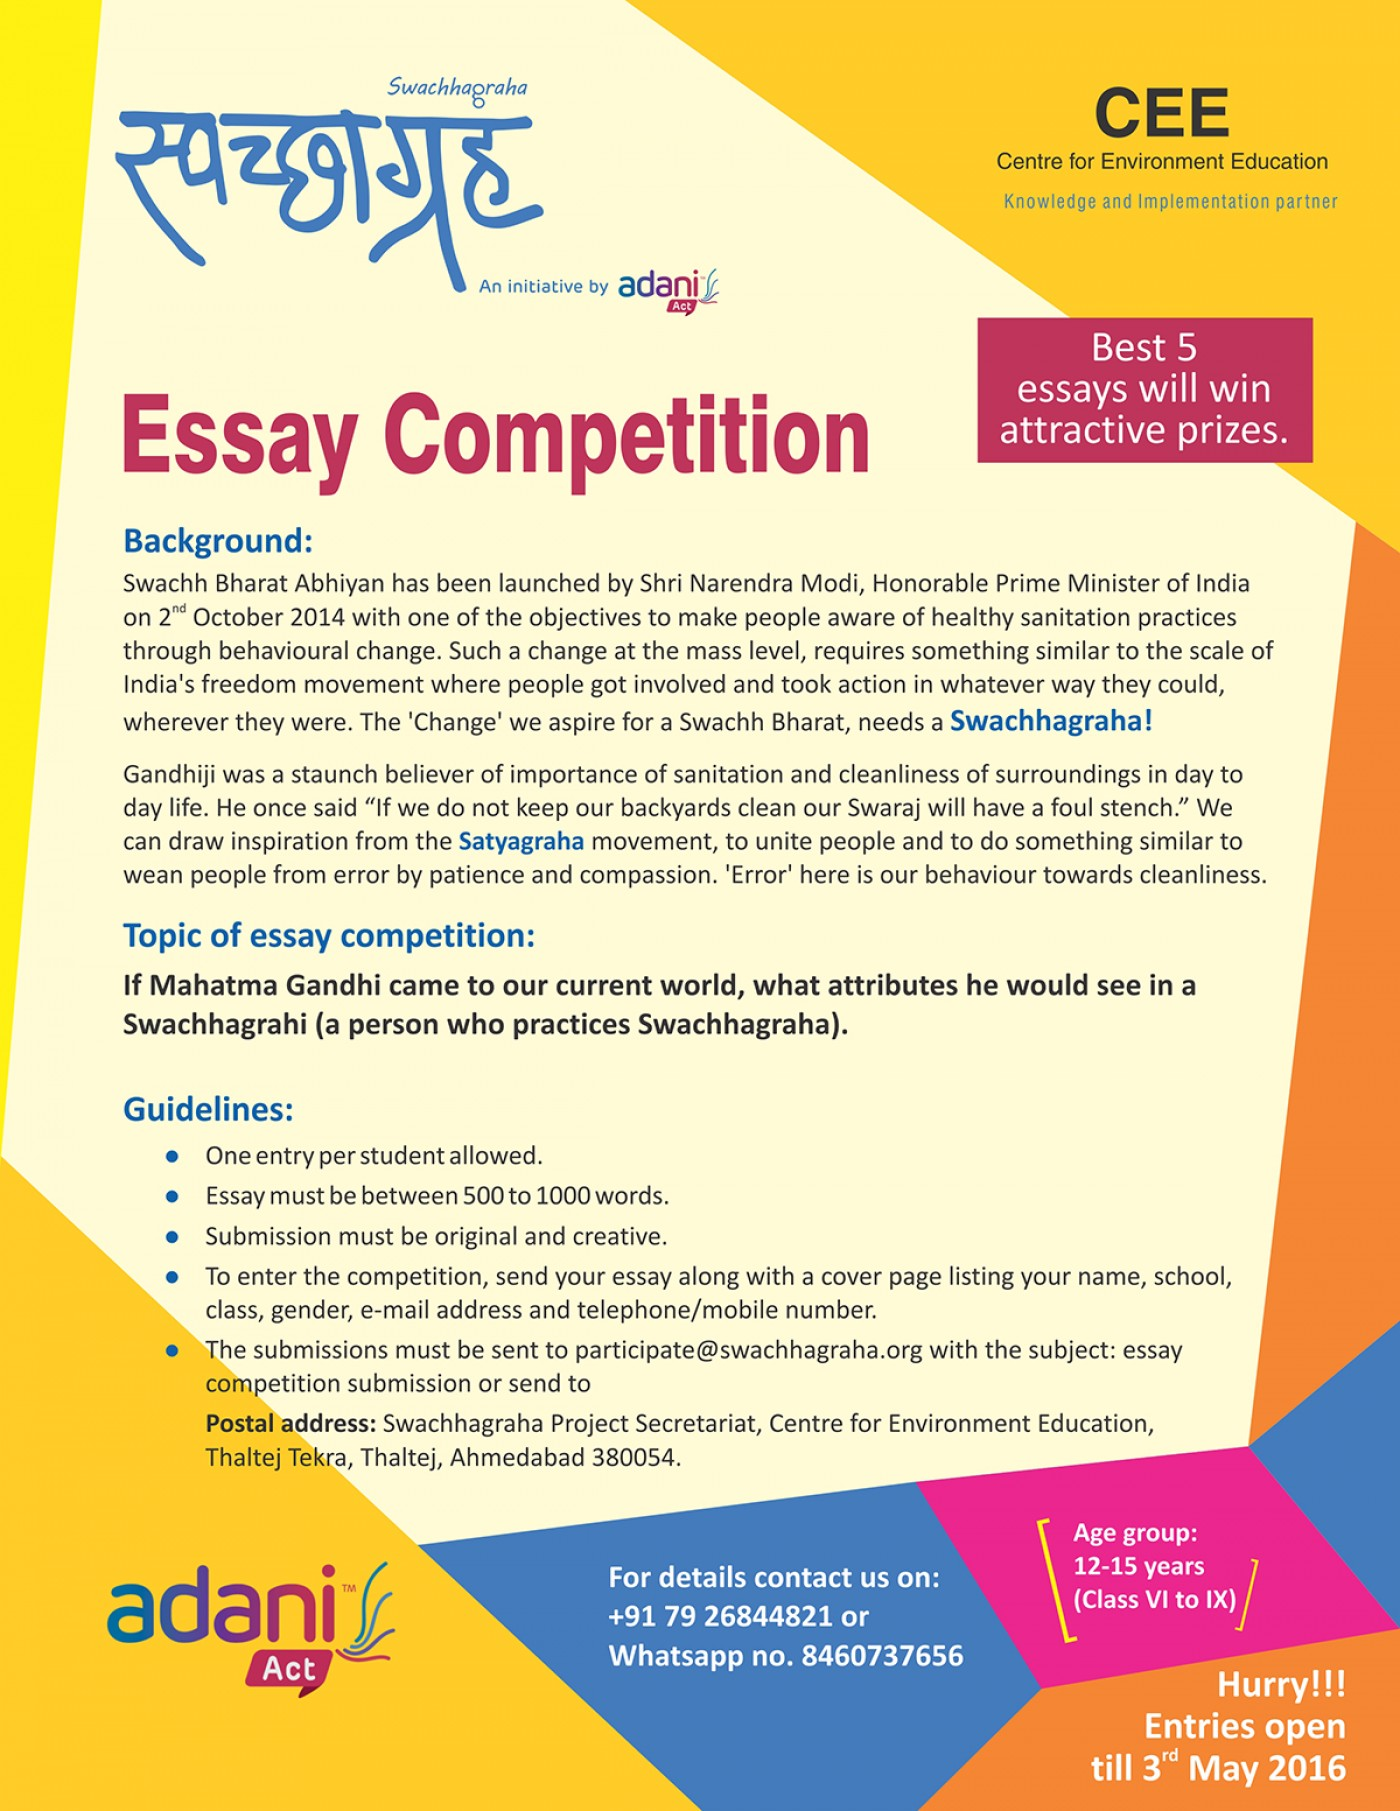 011 20180129171946essay20competition Essay About Cleanliness In School Phenomenal Campaign On Premises Toilet And Its Surrounding 1400